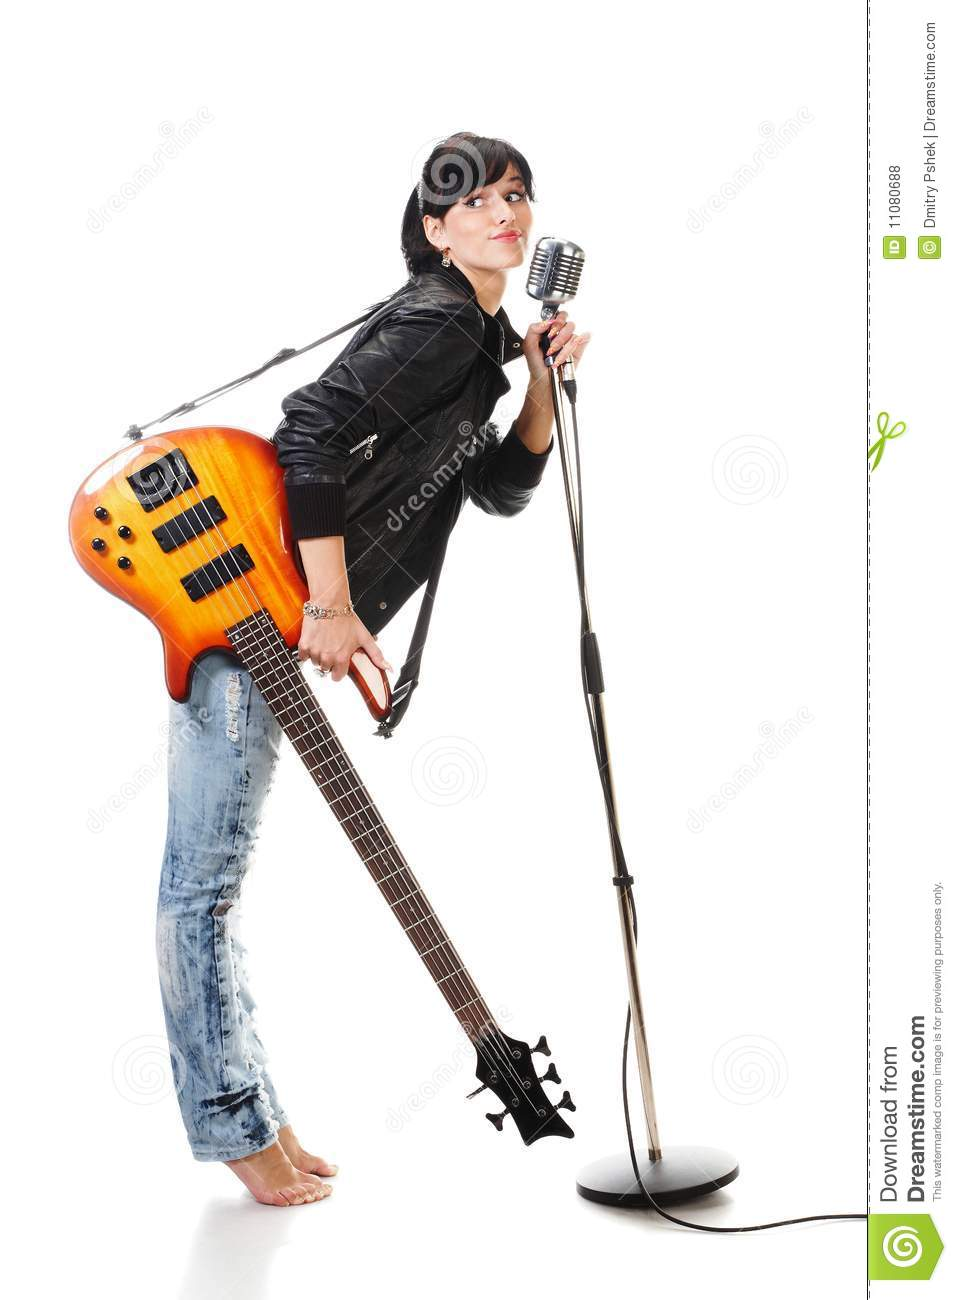 Rock-n-roll girl holding a guitar singing